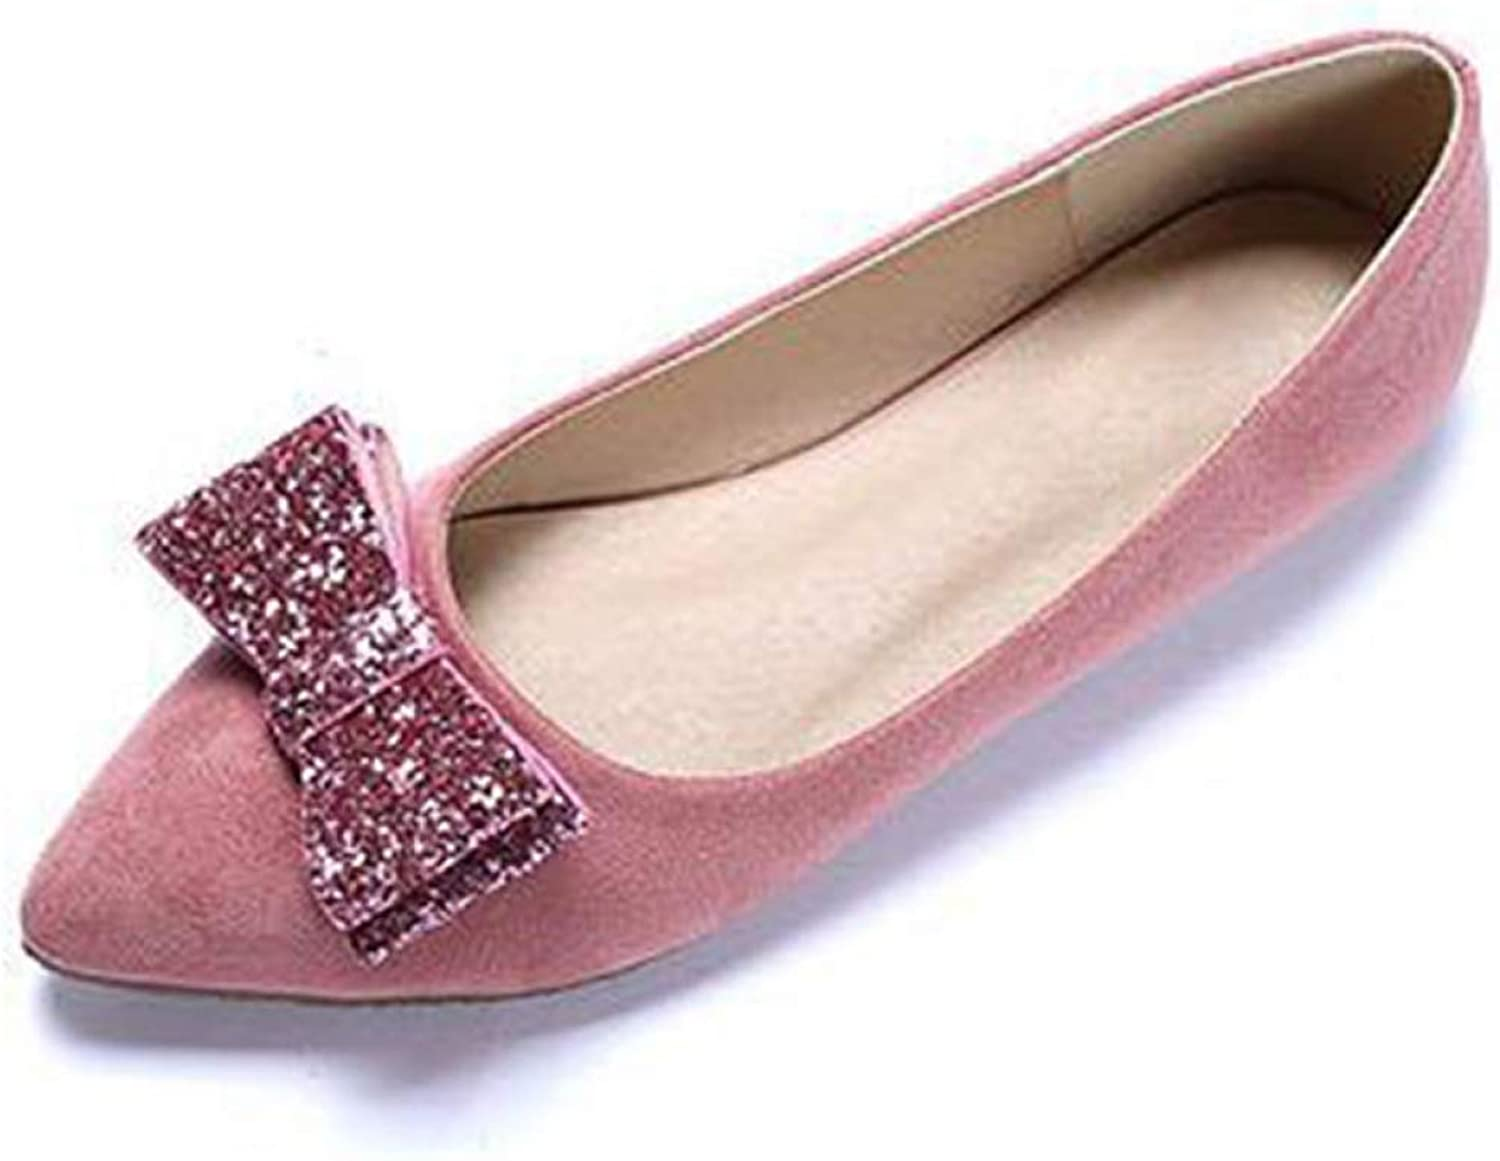 DETAIWIN Women Pointed Toe Pumps Loafers Flats Bow Wedding Party Slip On Fashion Glitter Ballet Dress shoes